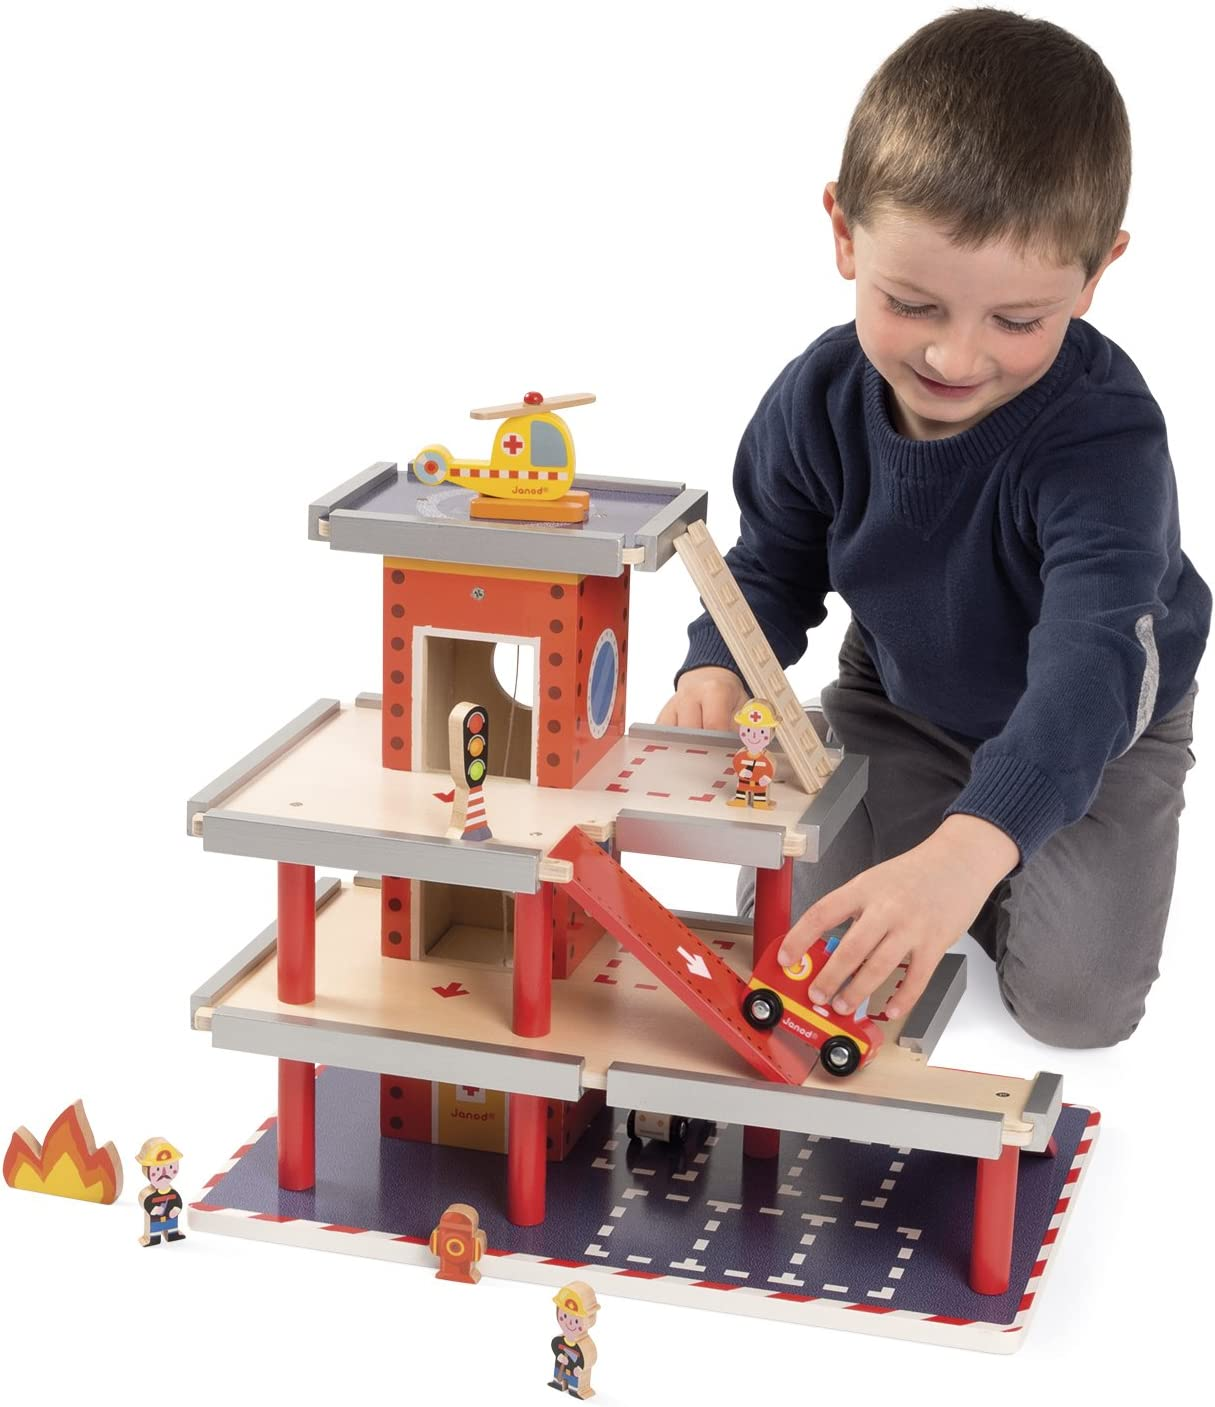 Janod MINI STORY FIREFIGHTER Wooden Toy Box Set Toddler//Child Figures BN